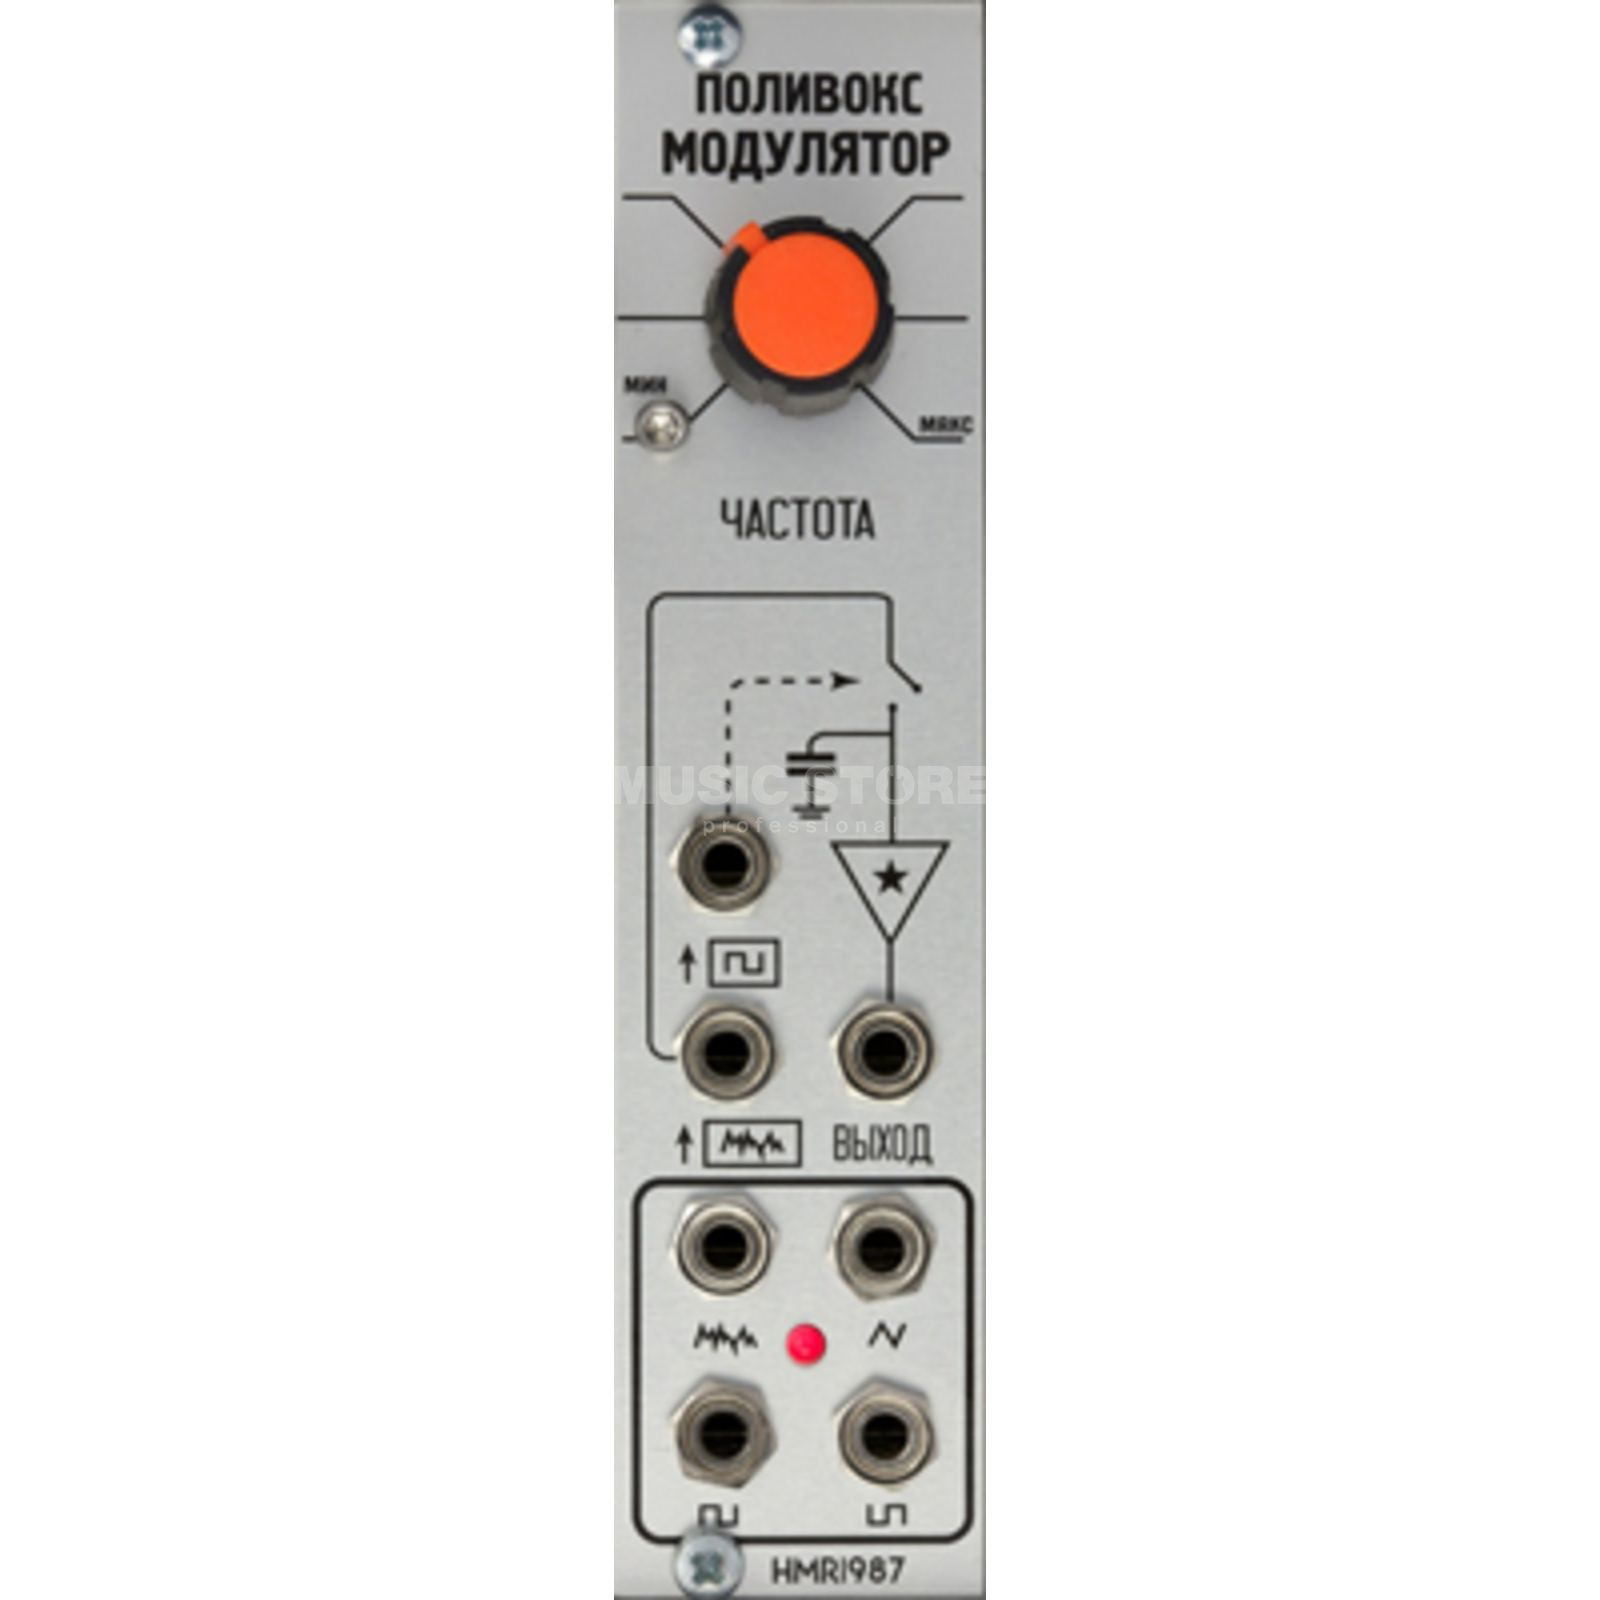 The Harvestman Polivoks Modulator Produktbild